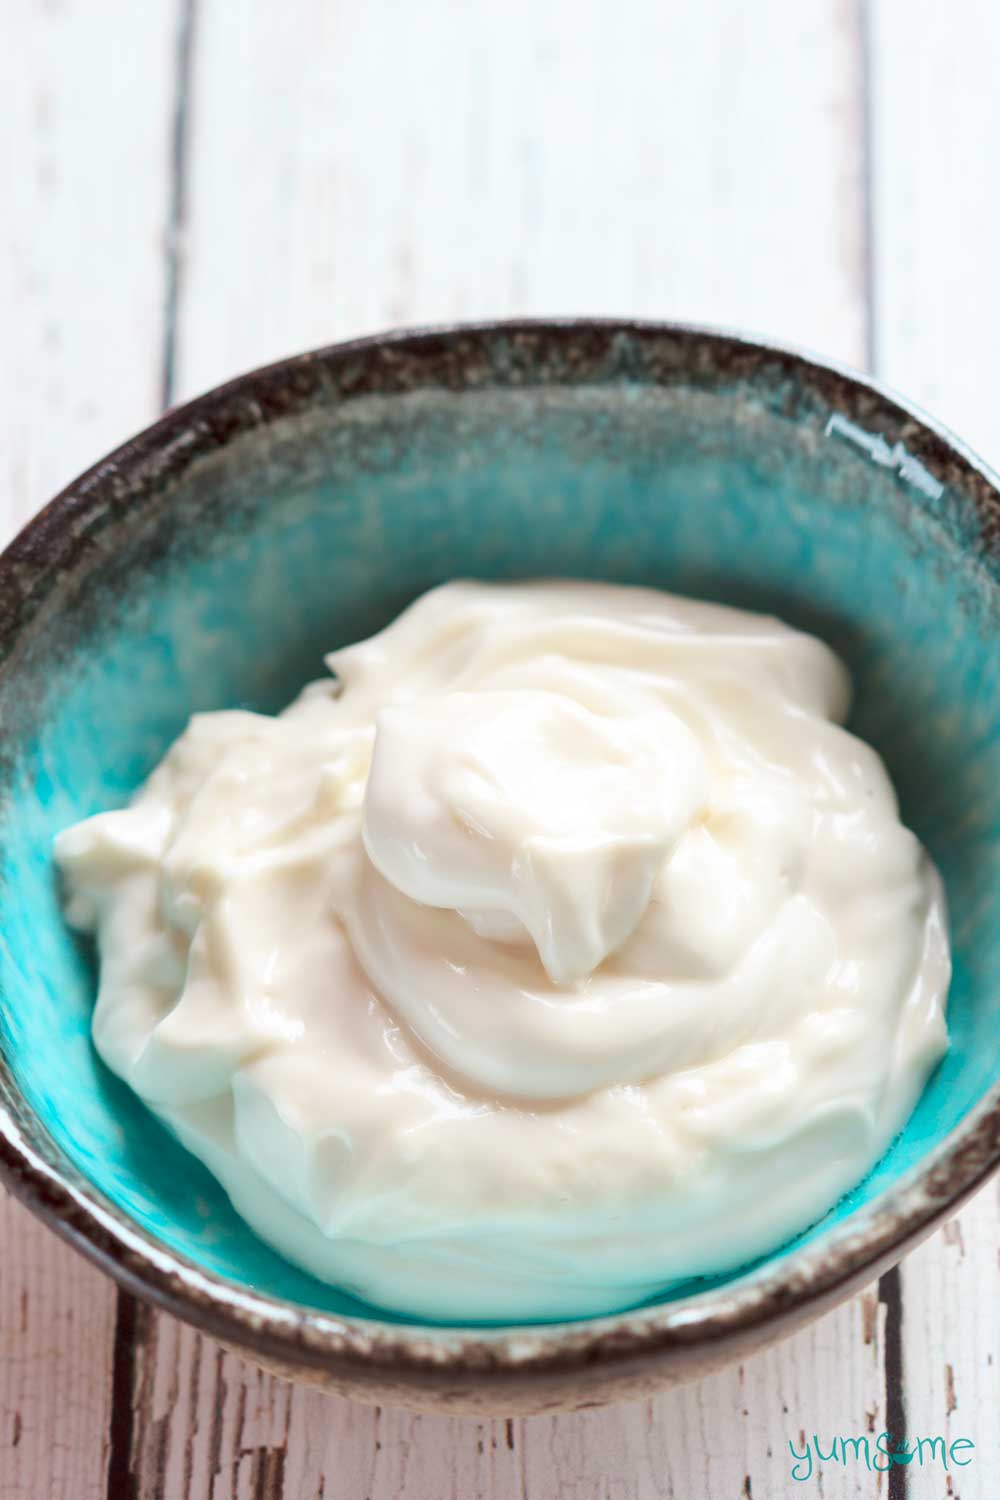 How to Make Tofu Cream How to Make Tofu Cream new picture